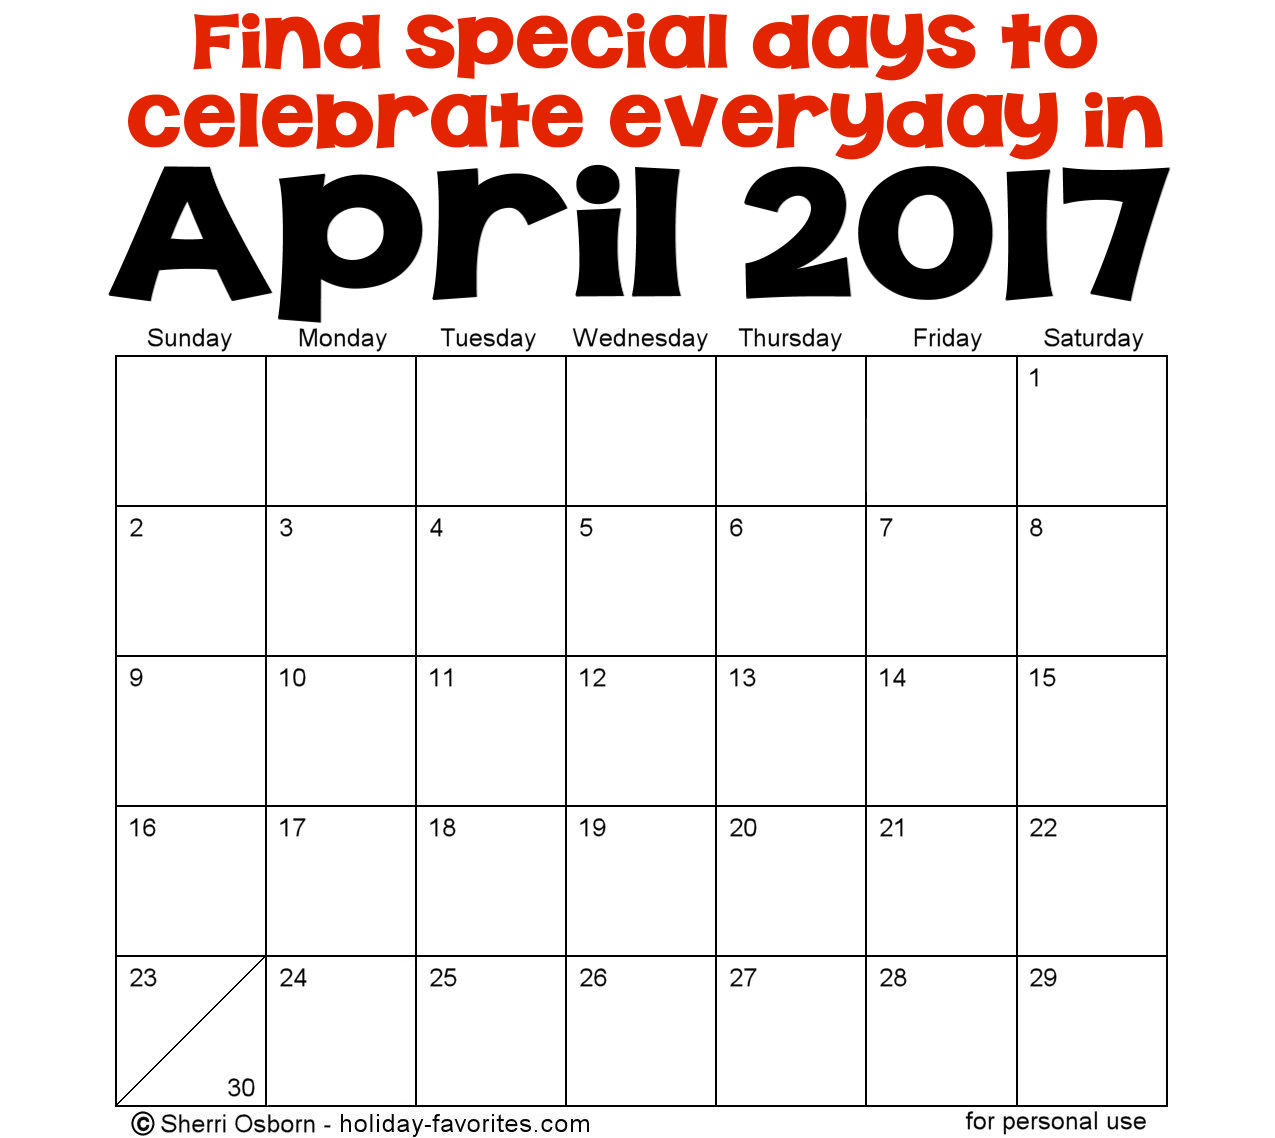 April 2017 Holidays and Special Days